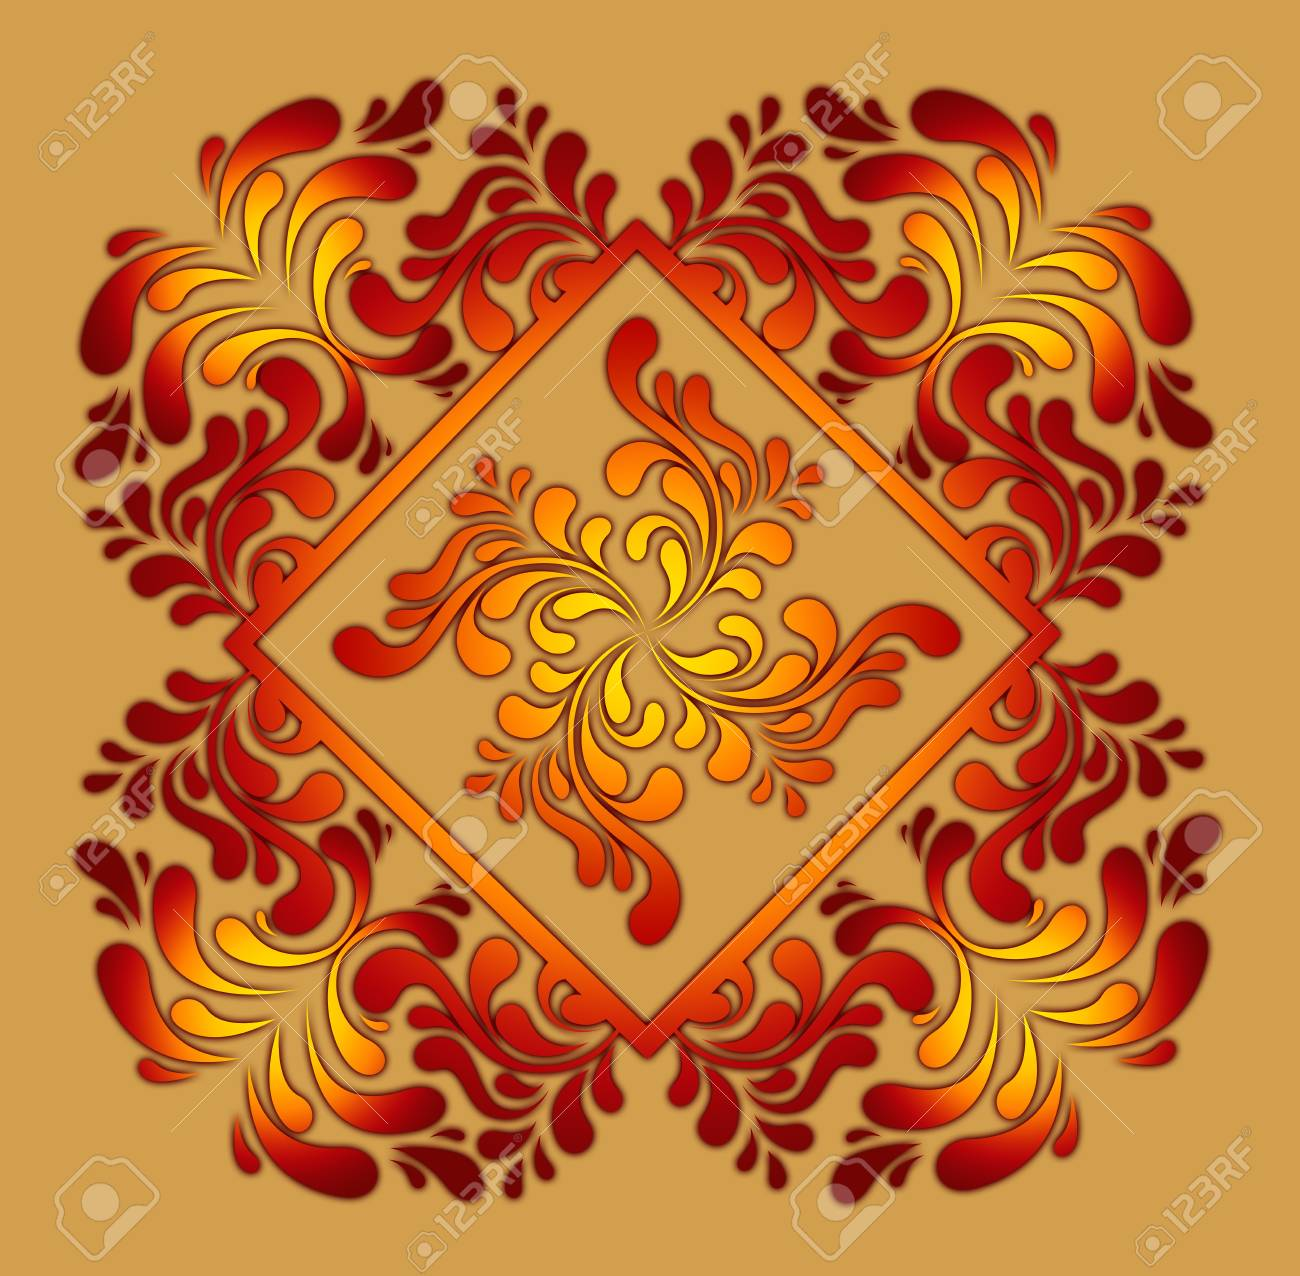 pattern in the manner of  twisted figures Stock Photo - 6654588